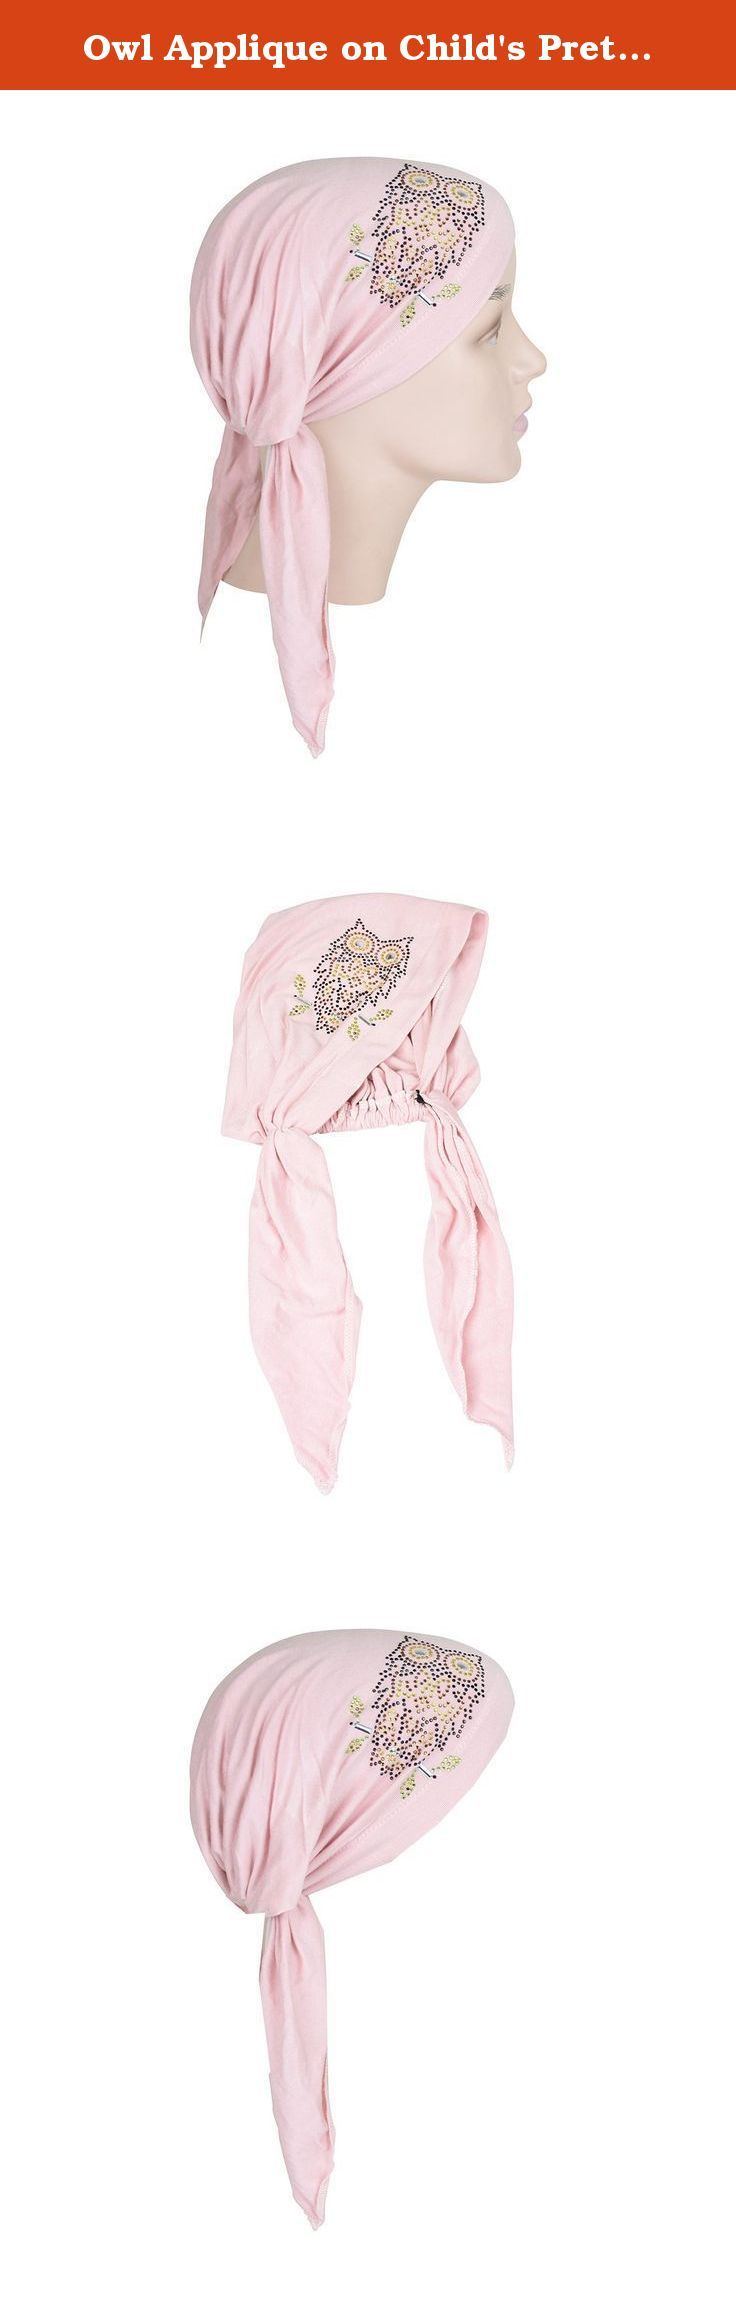 owl applique on childs pretied head scarf cancer cap light pink this is a